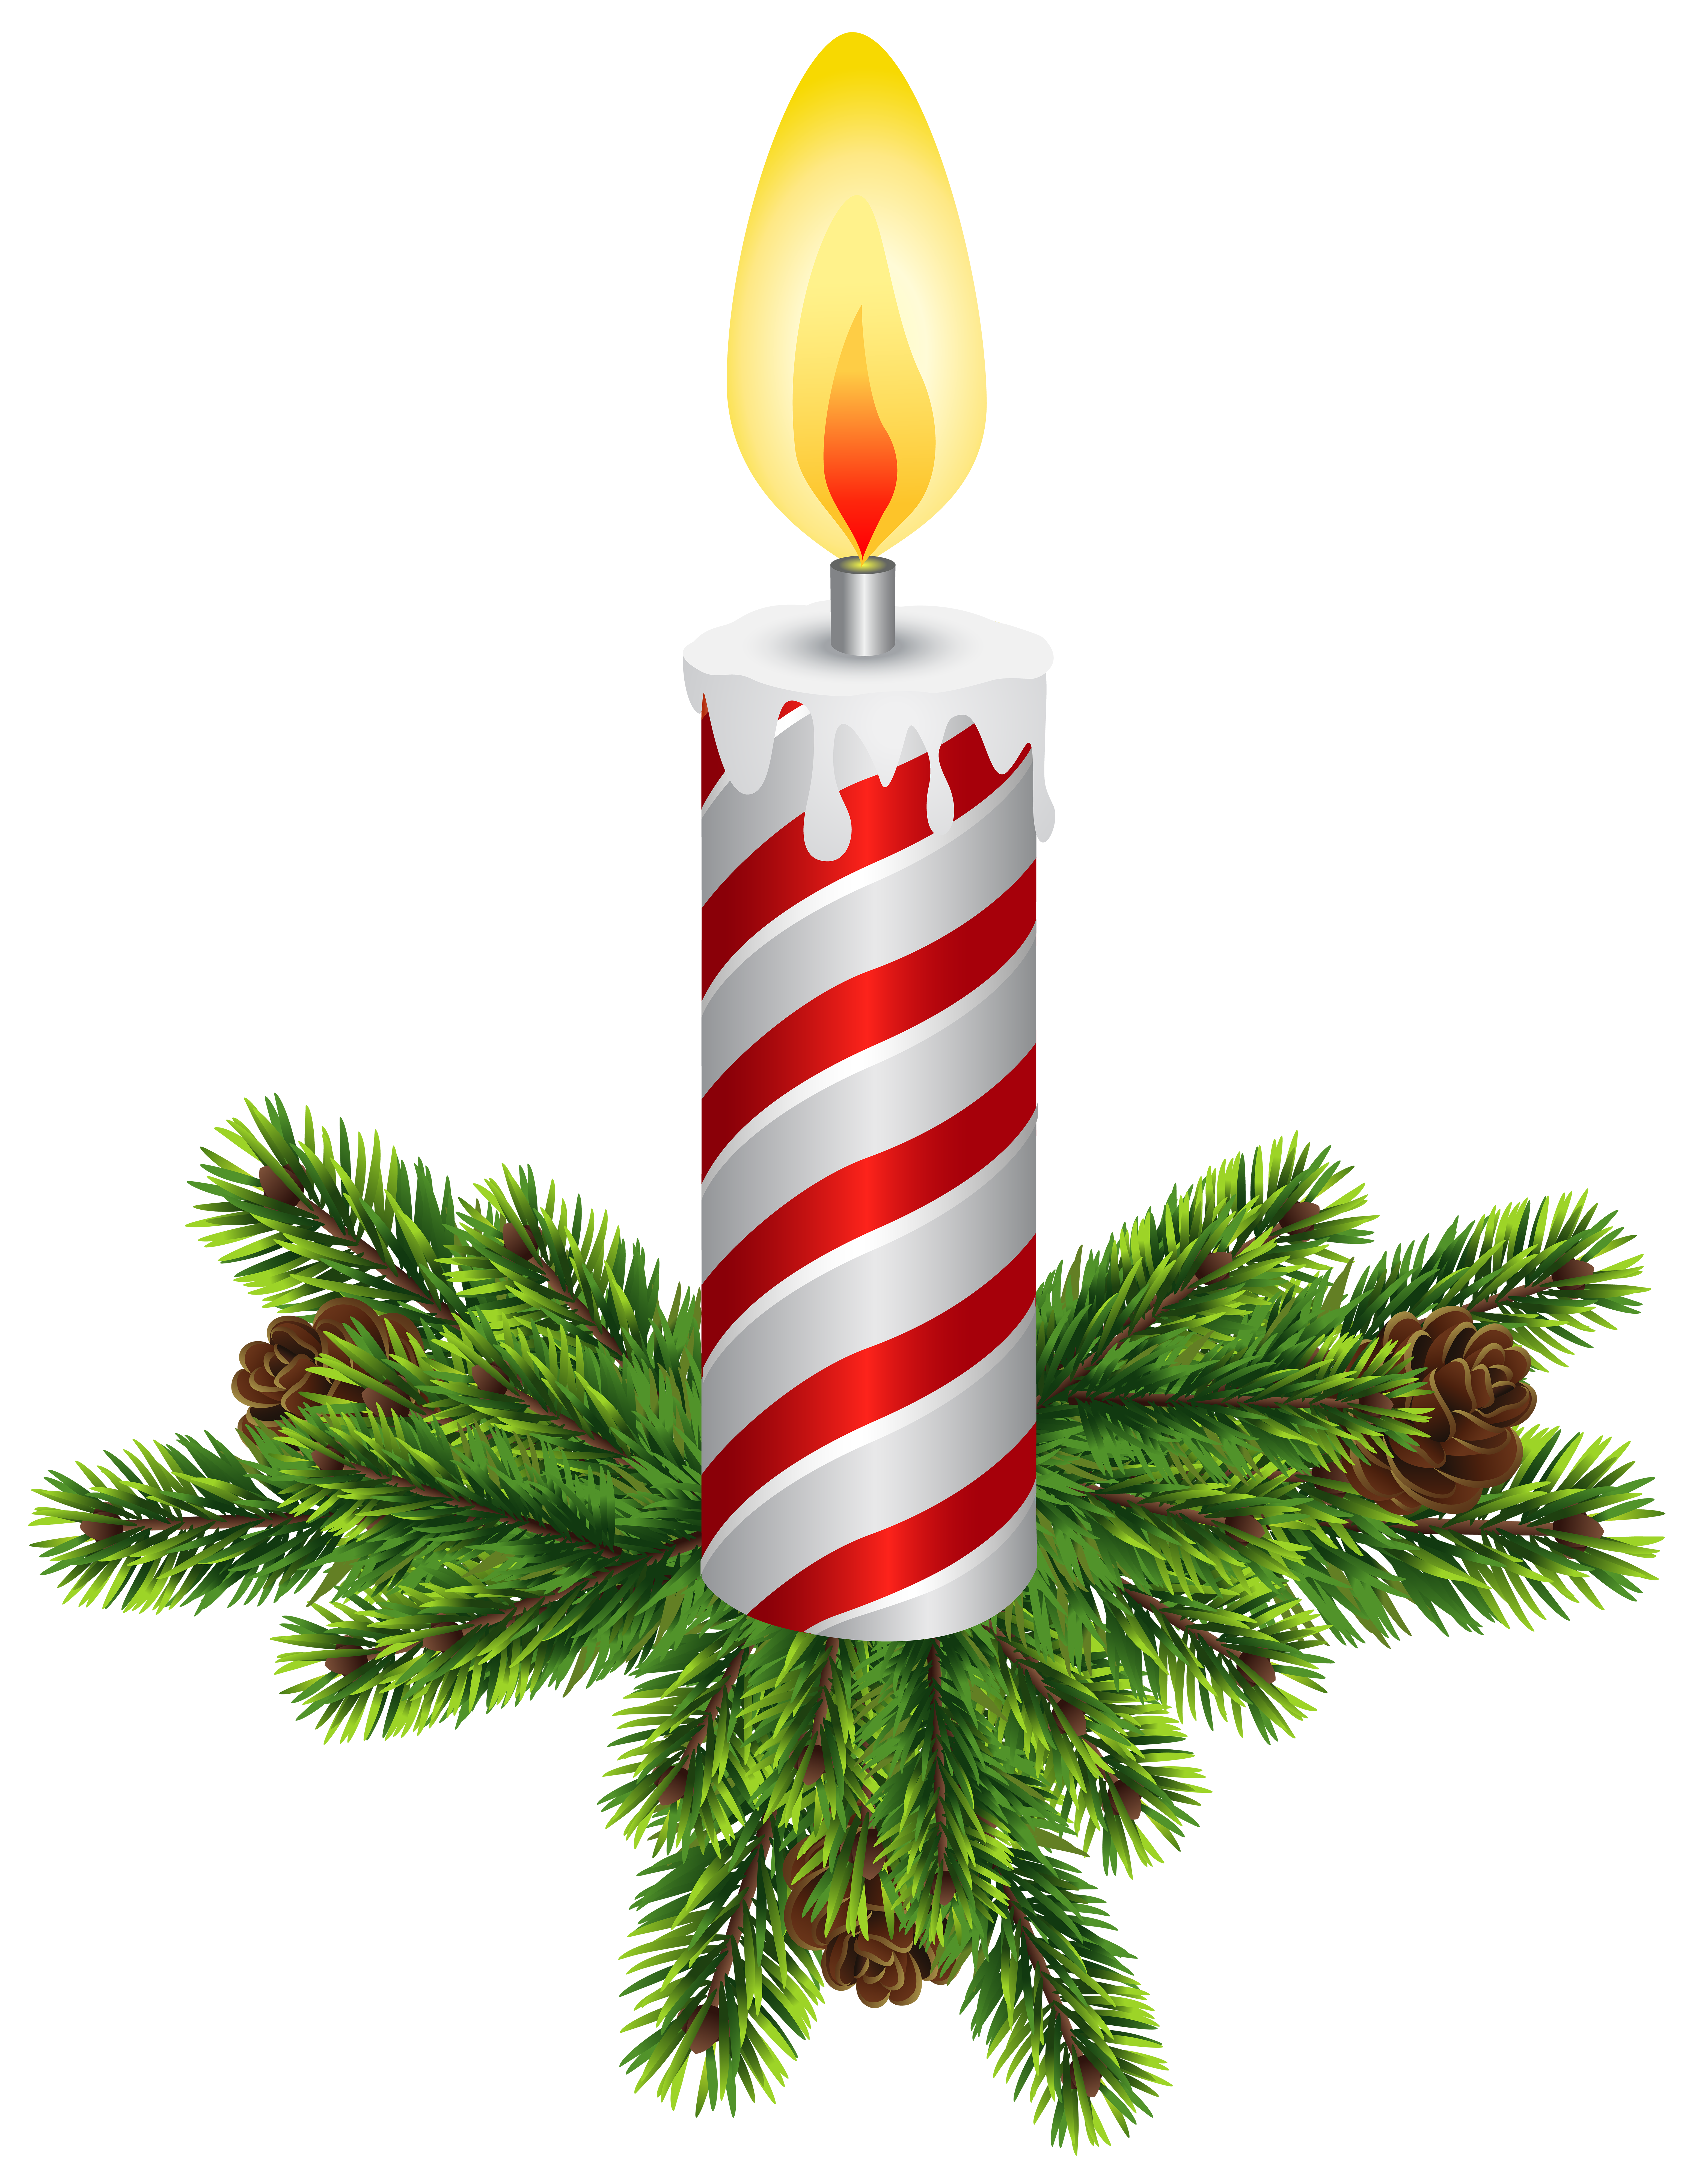 6213x8000 Christmas Candles Transparent Png Clip Artu200b Gallery Yopriceville